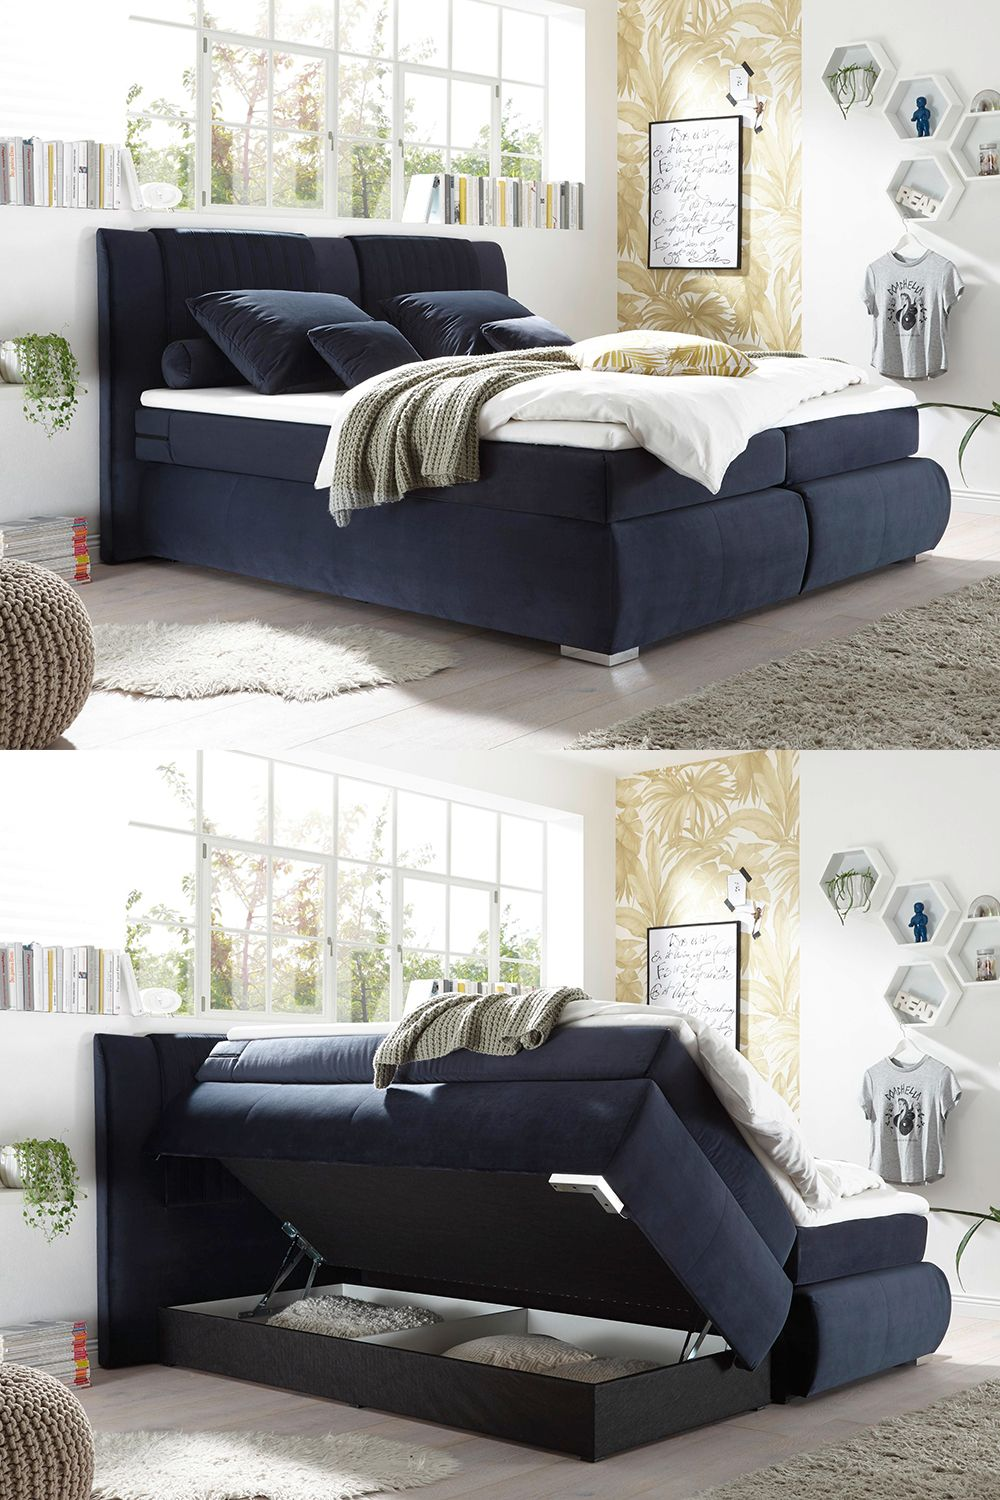 Boxspring Krevet In 2020 Home Decor Sectional Couch Chaise Lounge